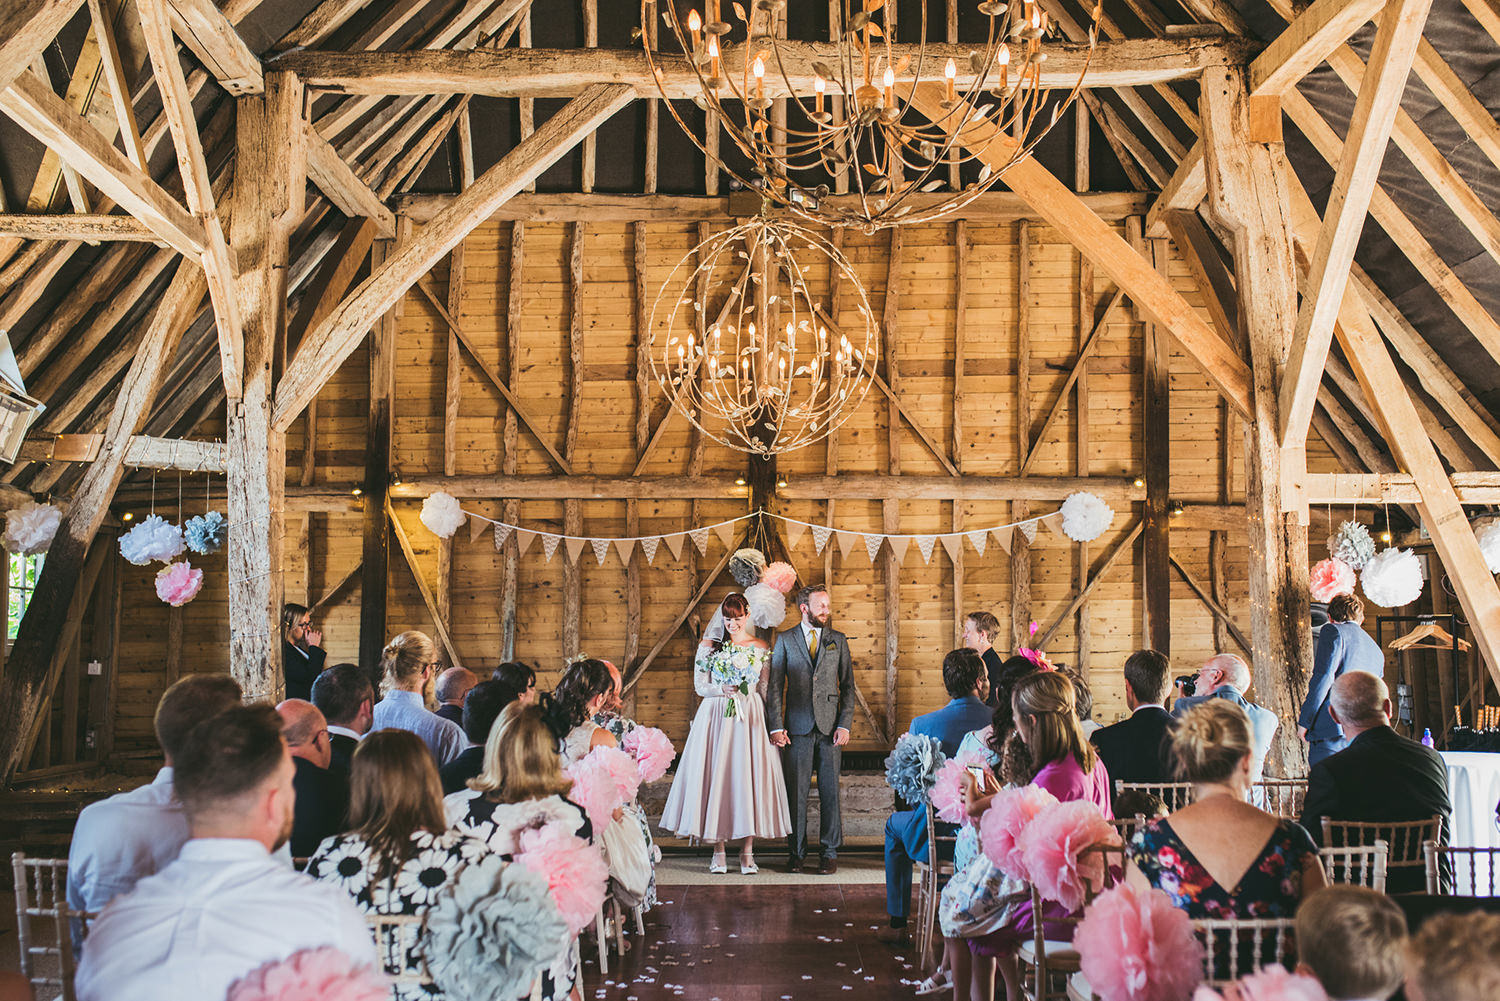 odo's-barn-bilsington-kent-wedding-photography-odo's-barn-kent-wedding-photography-by-lindsley-weddings.jpg